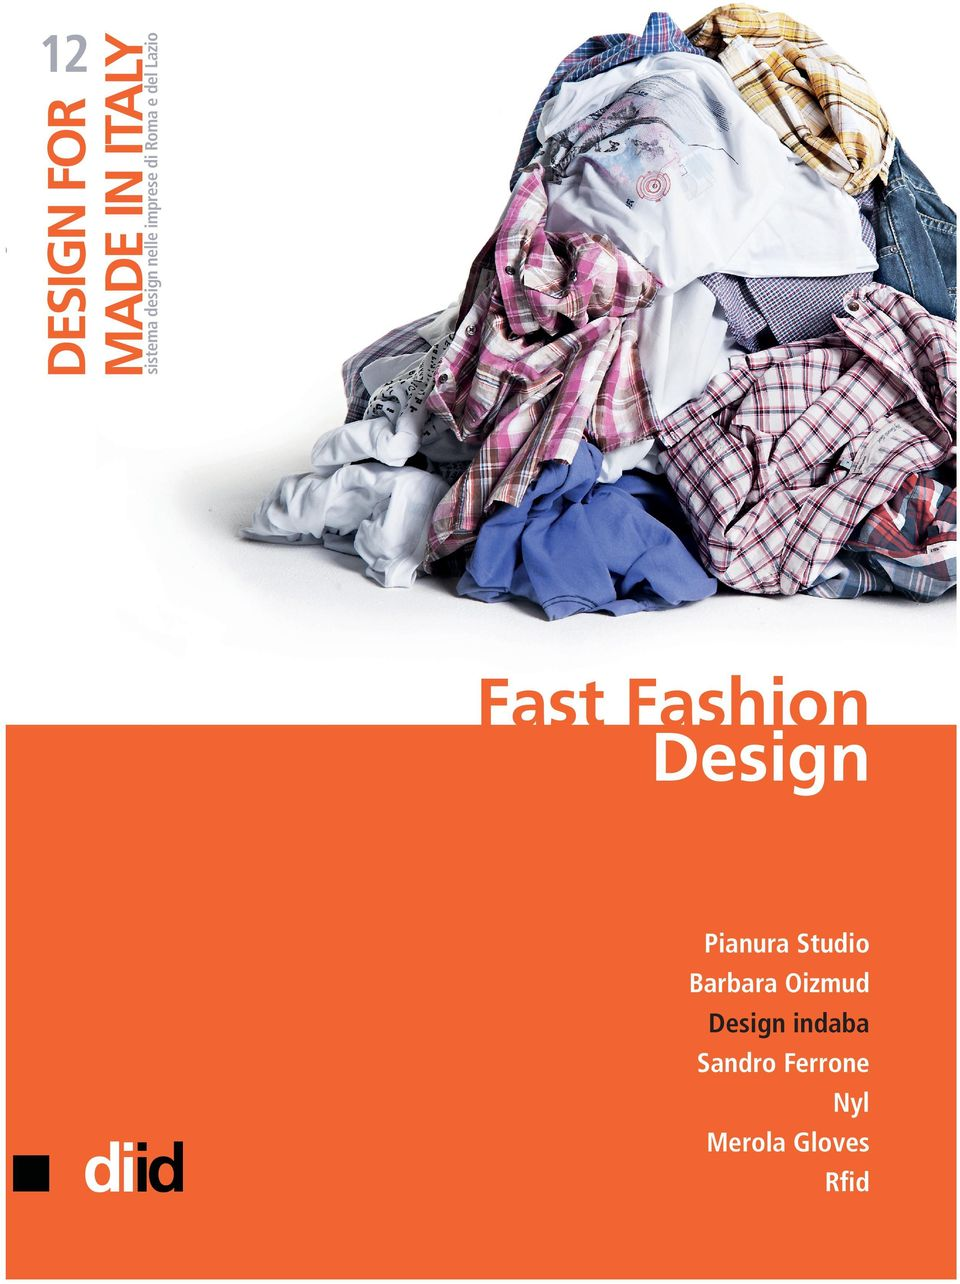 Fast Fashion Design diid Pianura Studio Barbara